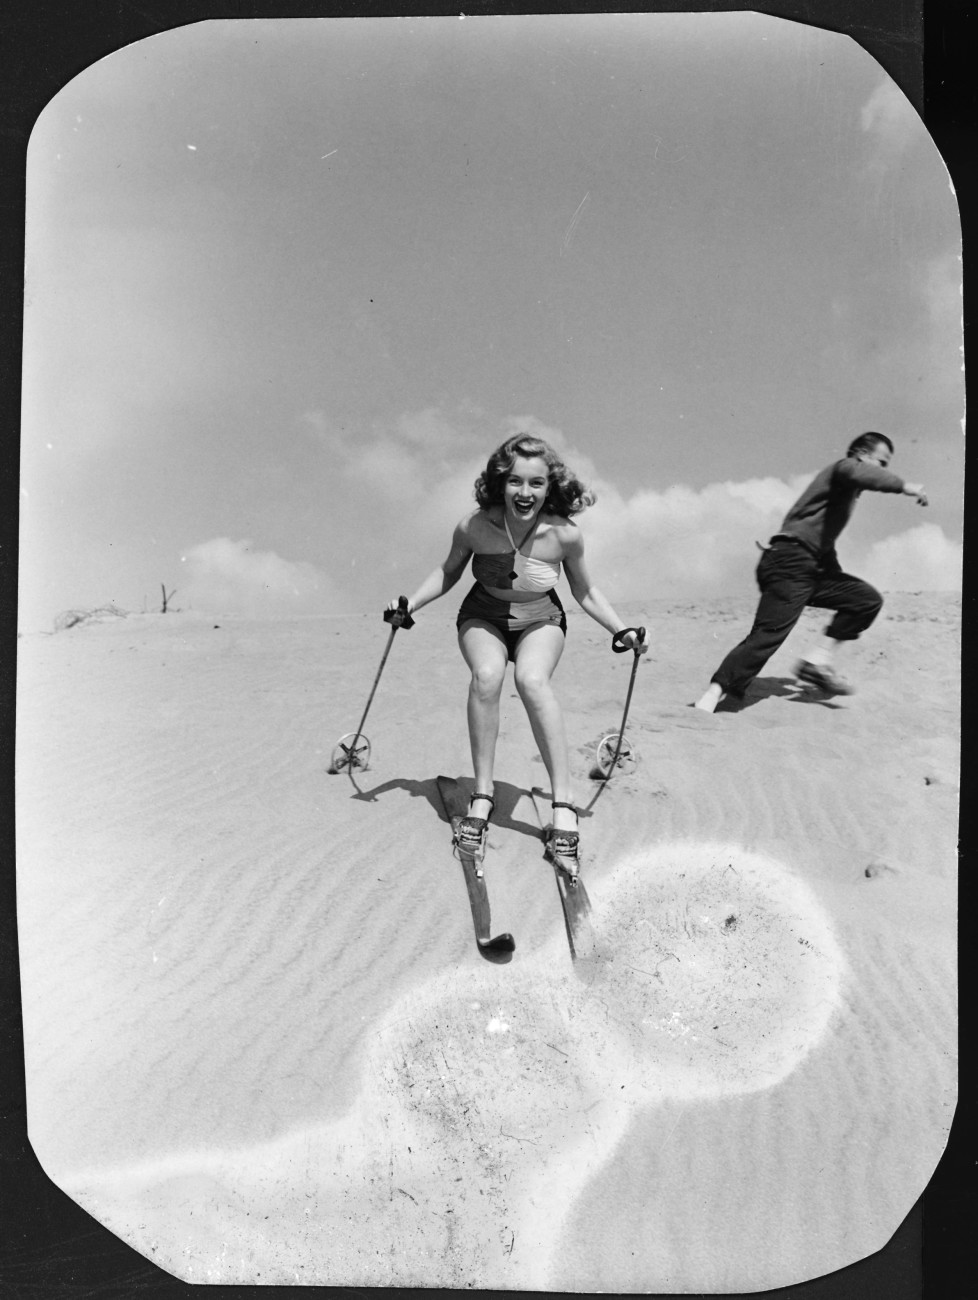 Norma Jeane Baker, future film star Marilyn Monroe (1926 - 1962), tries her hand at sand skiing on a dune, circa 1943. (Photo by Silver Screen Collection/Hulton Archive/Getty Images)